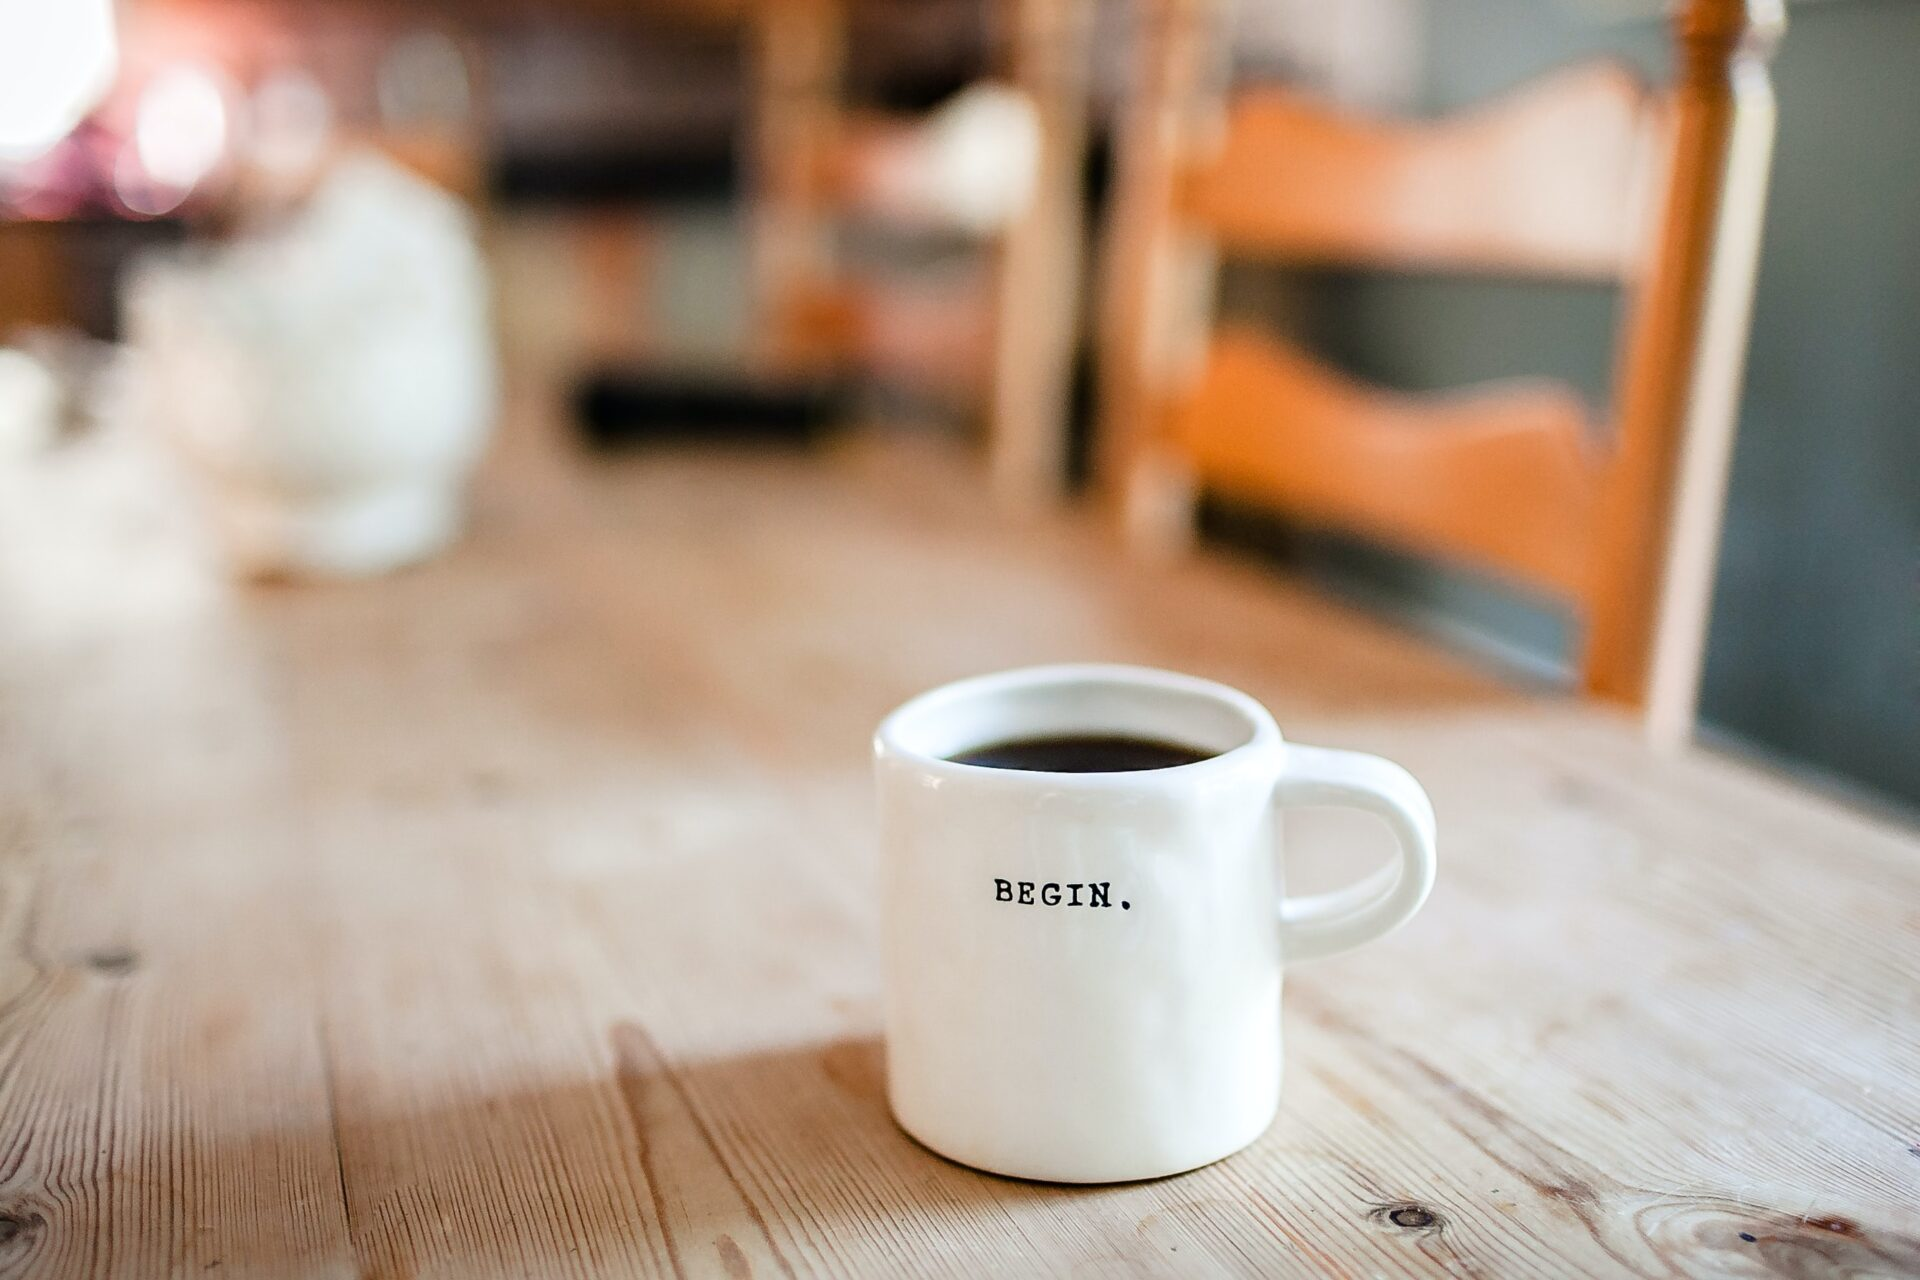 Coffee cup with the word begin written on it sitting on a wooden table